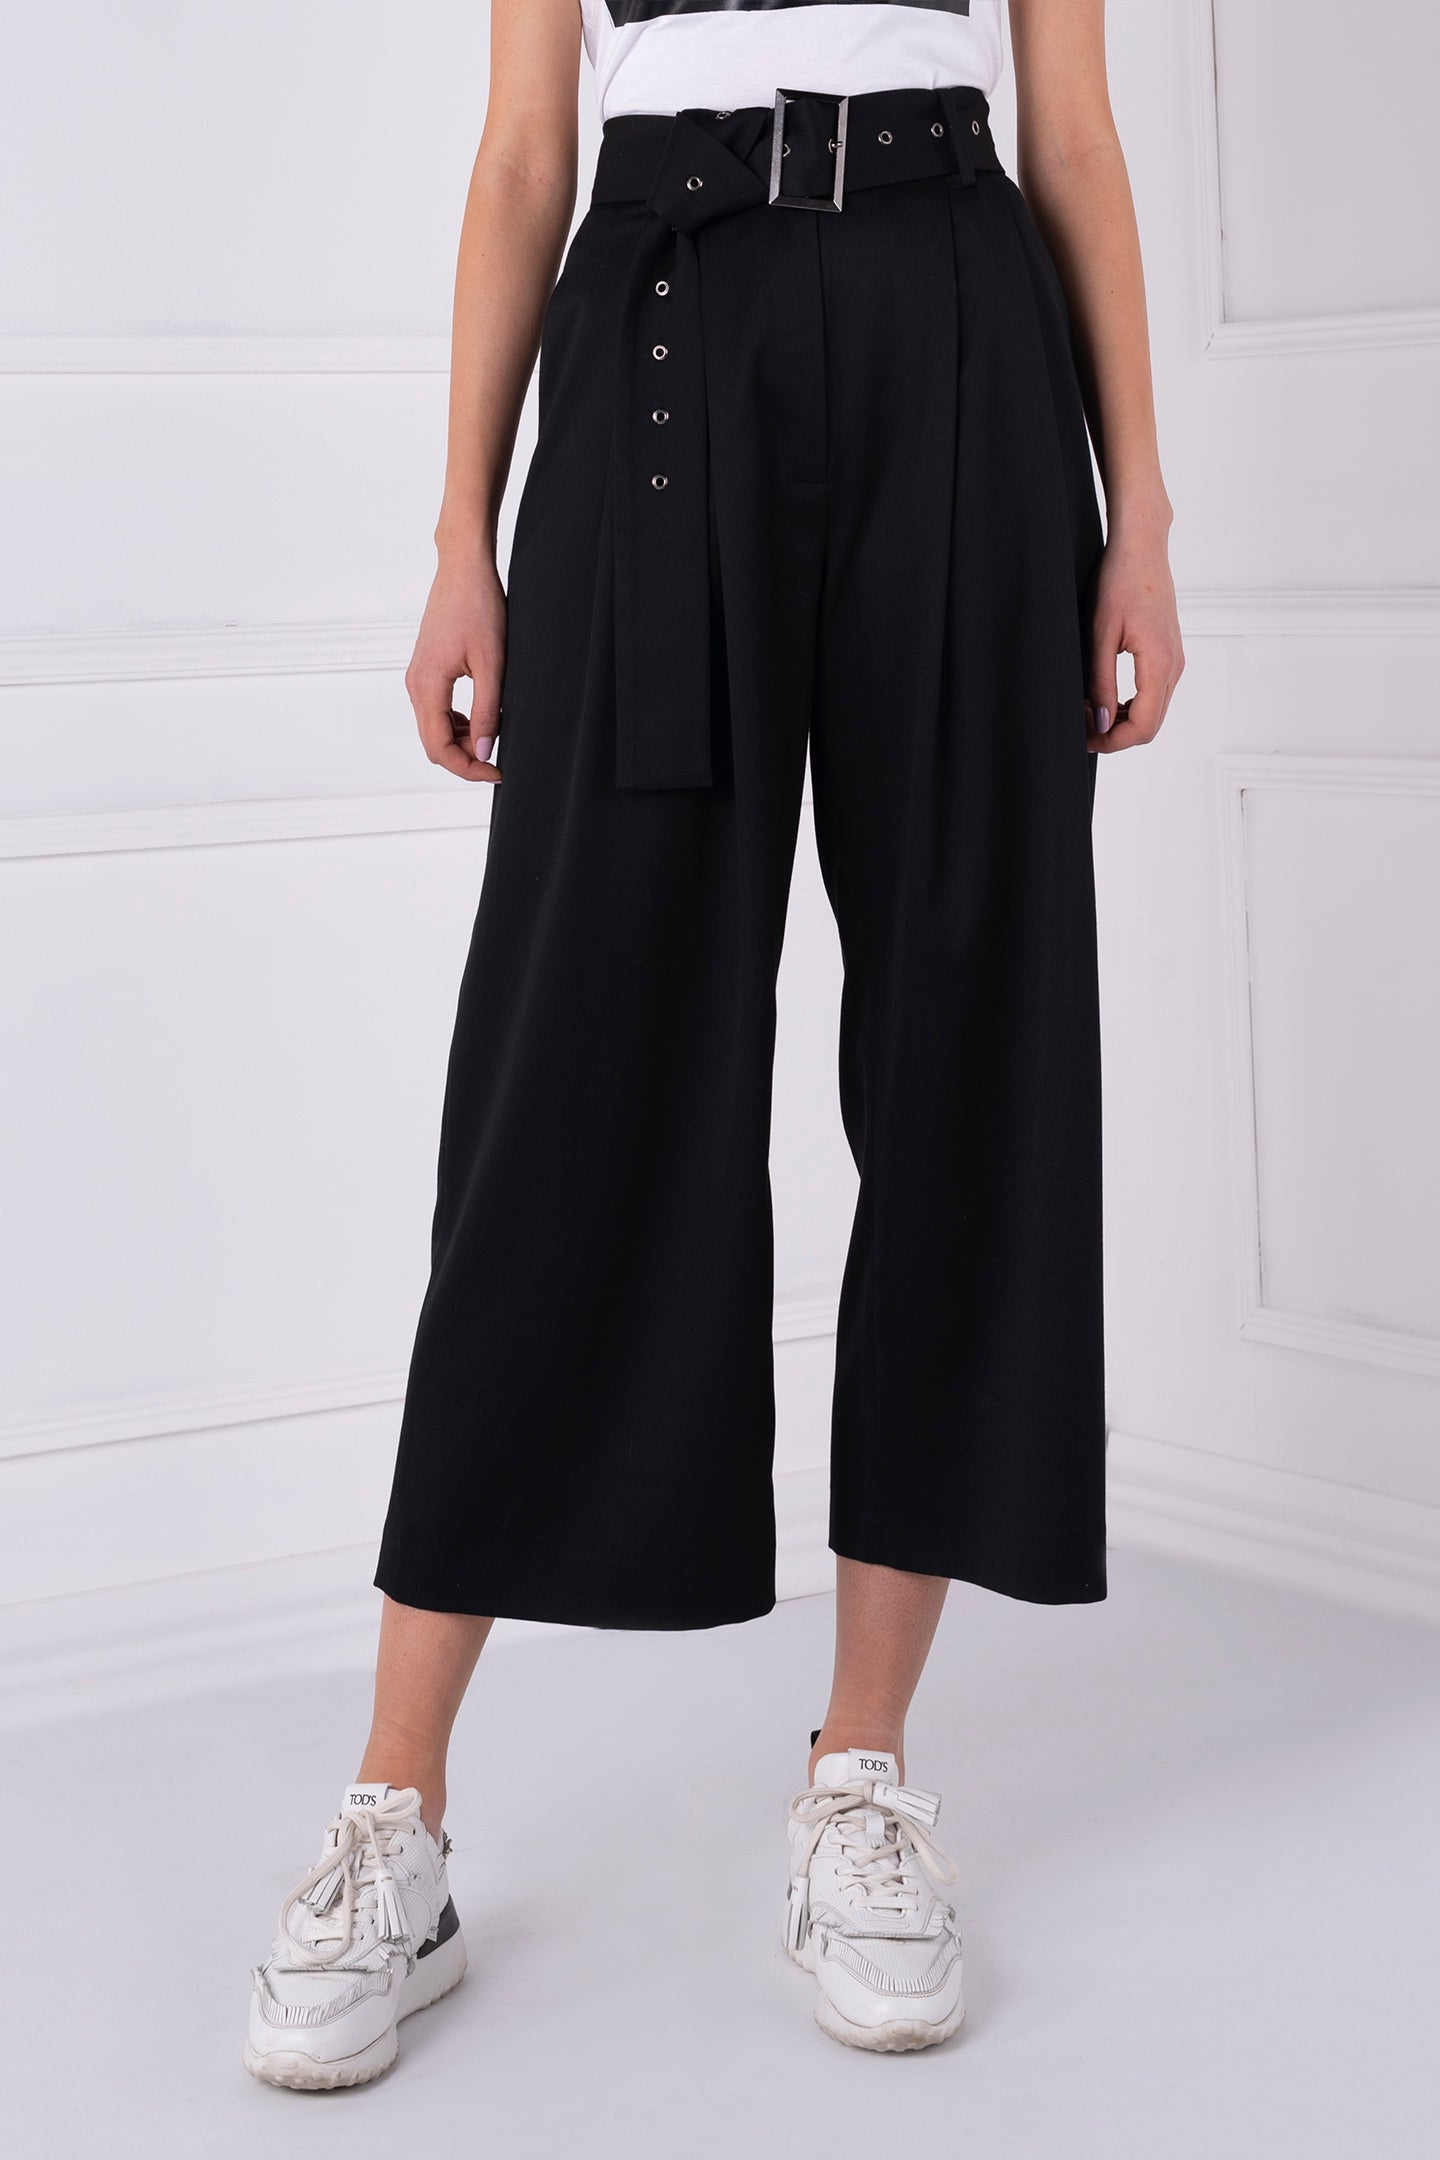 Amara Black Trousers